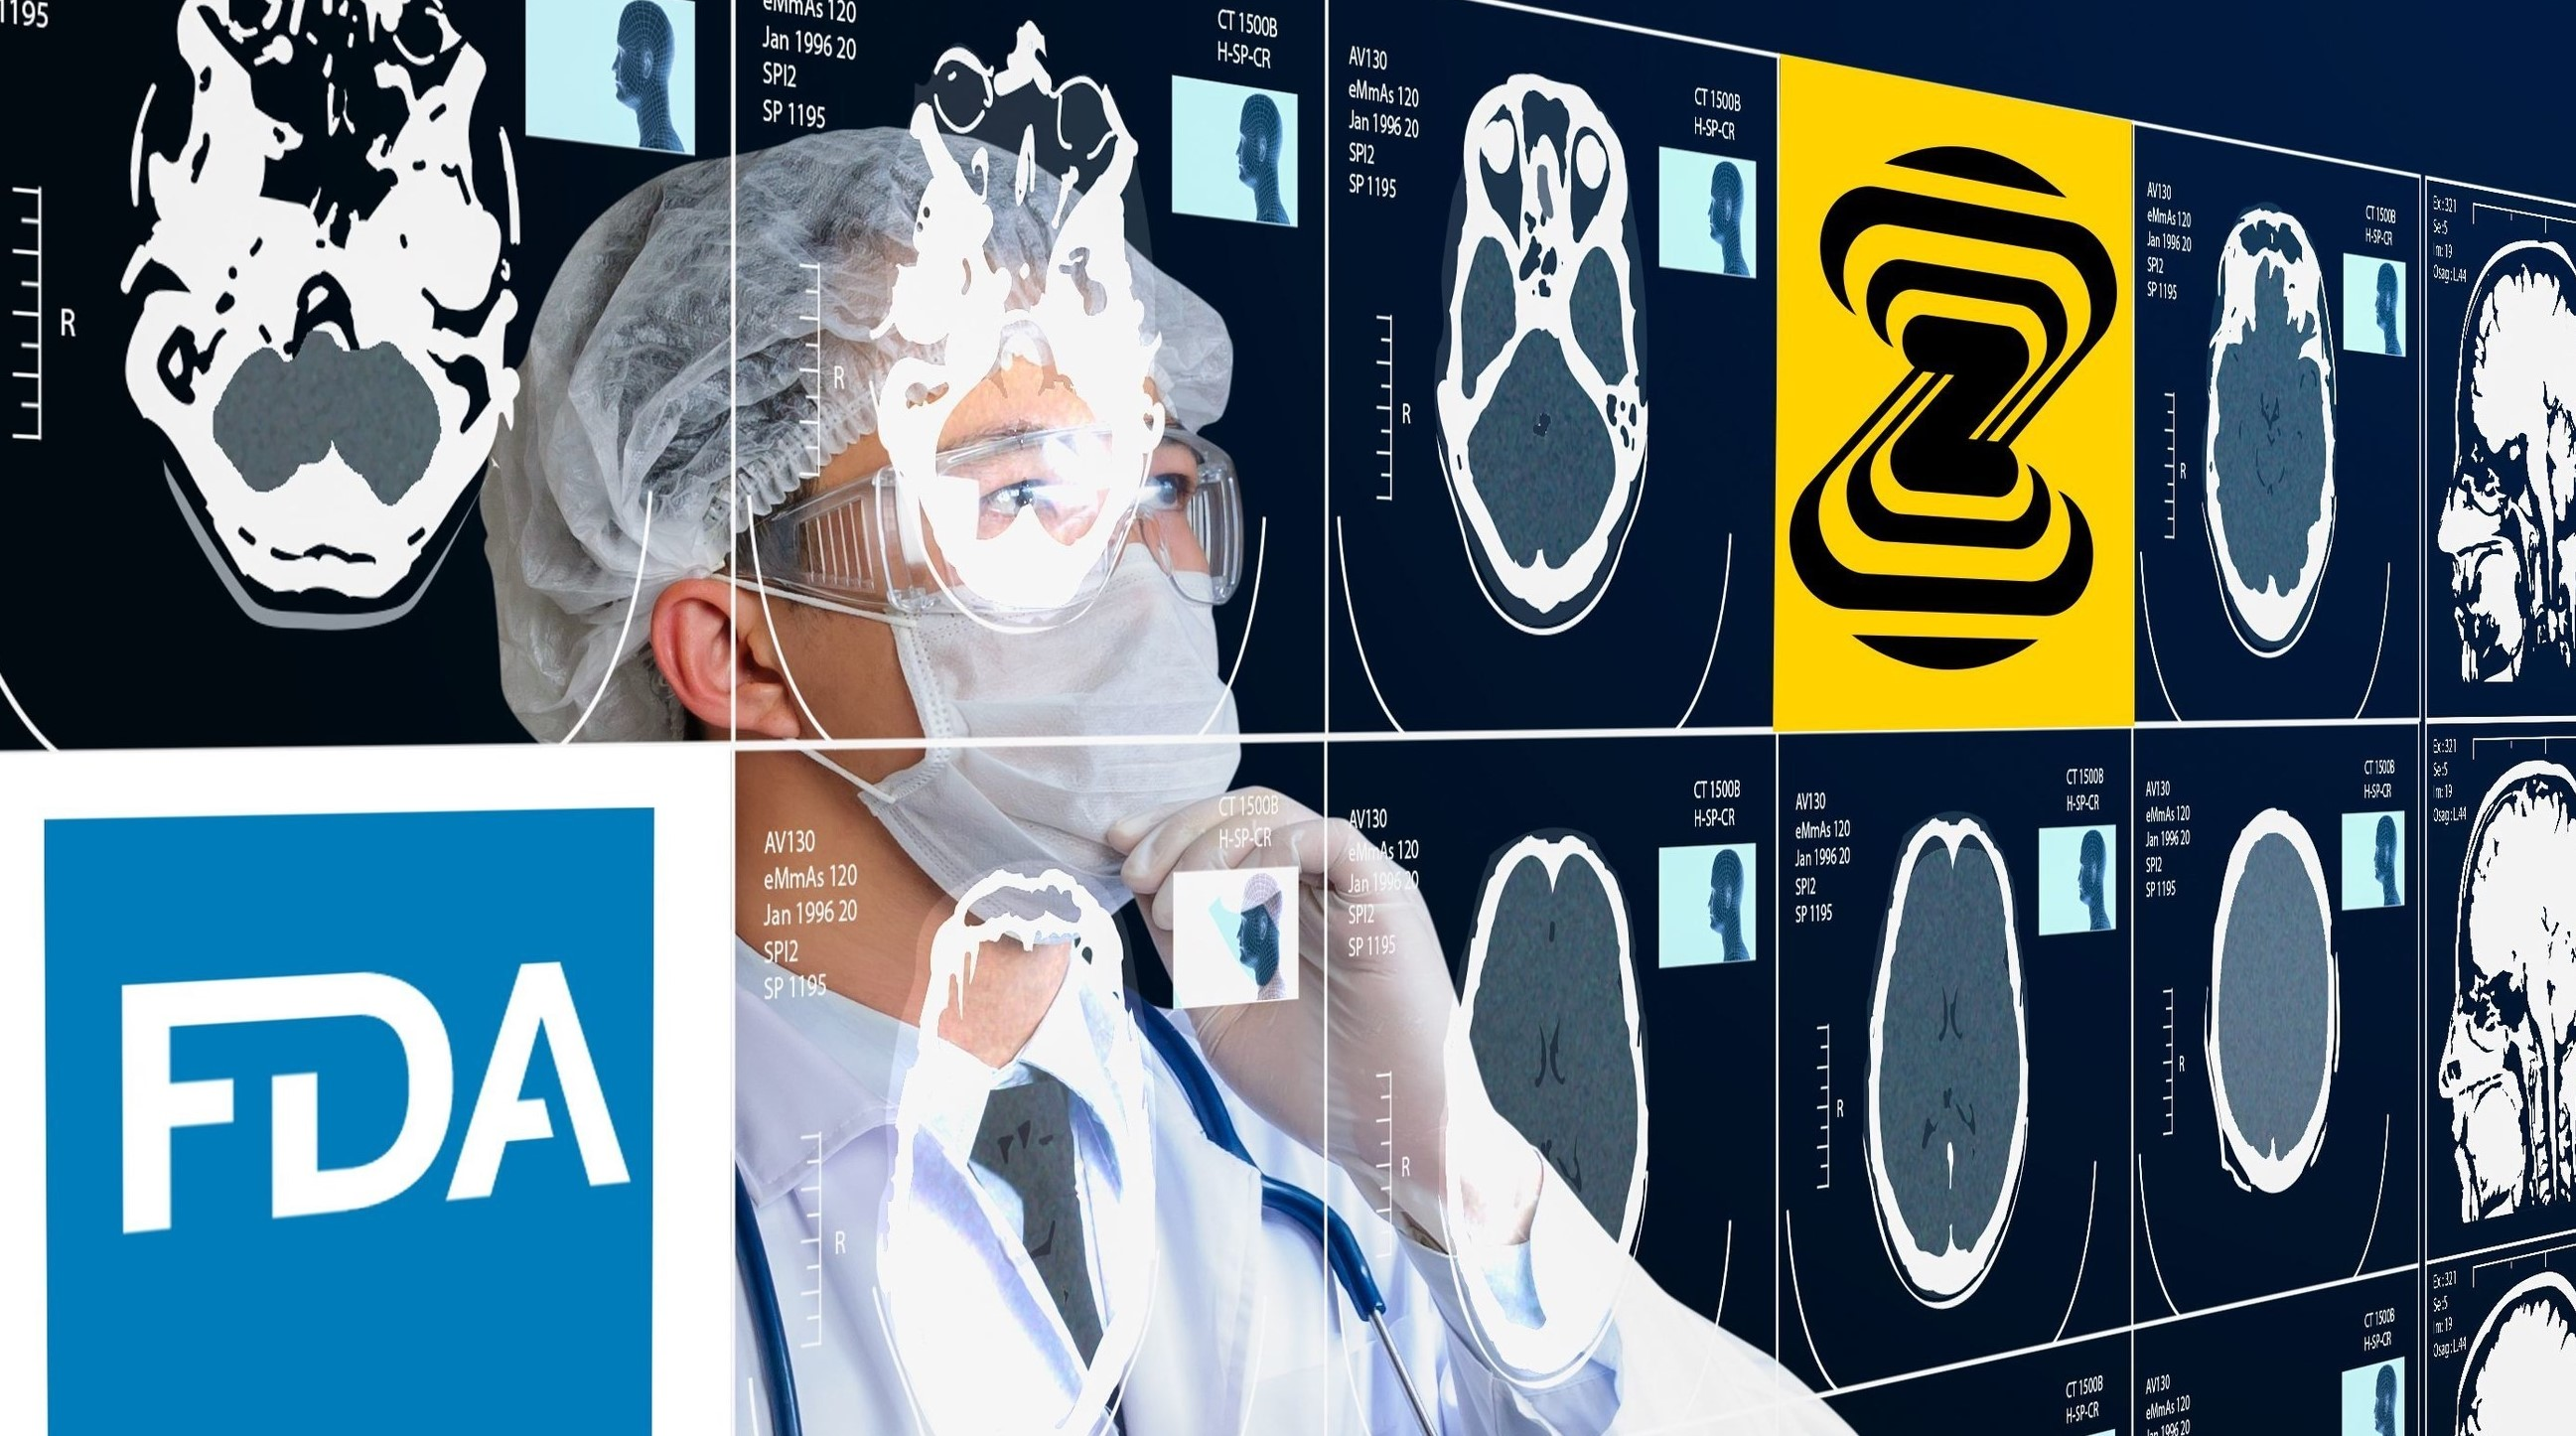 Impacting medical cases with the world's first FDA AI x-ray product – Zebra Medical Vision's AI1 solutions